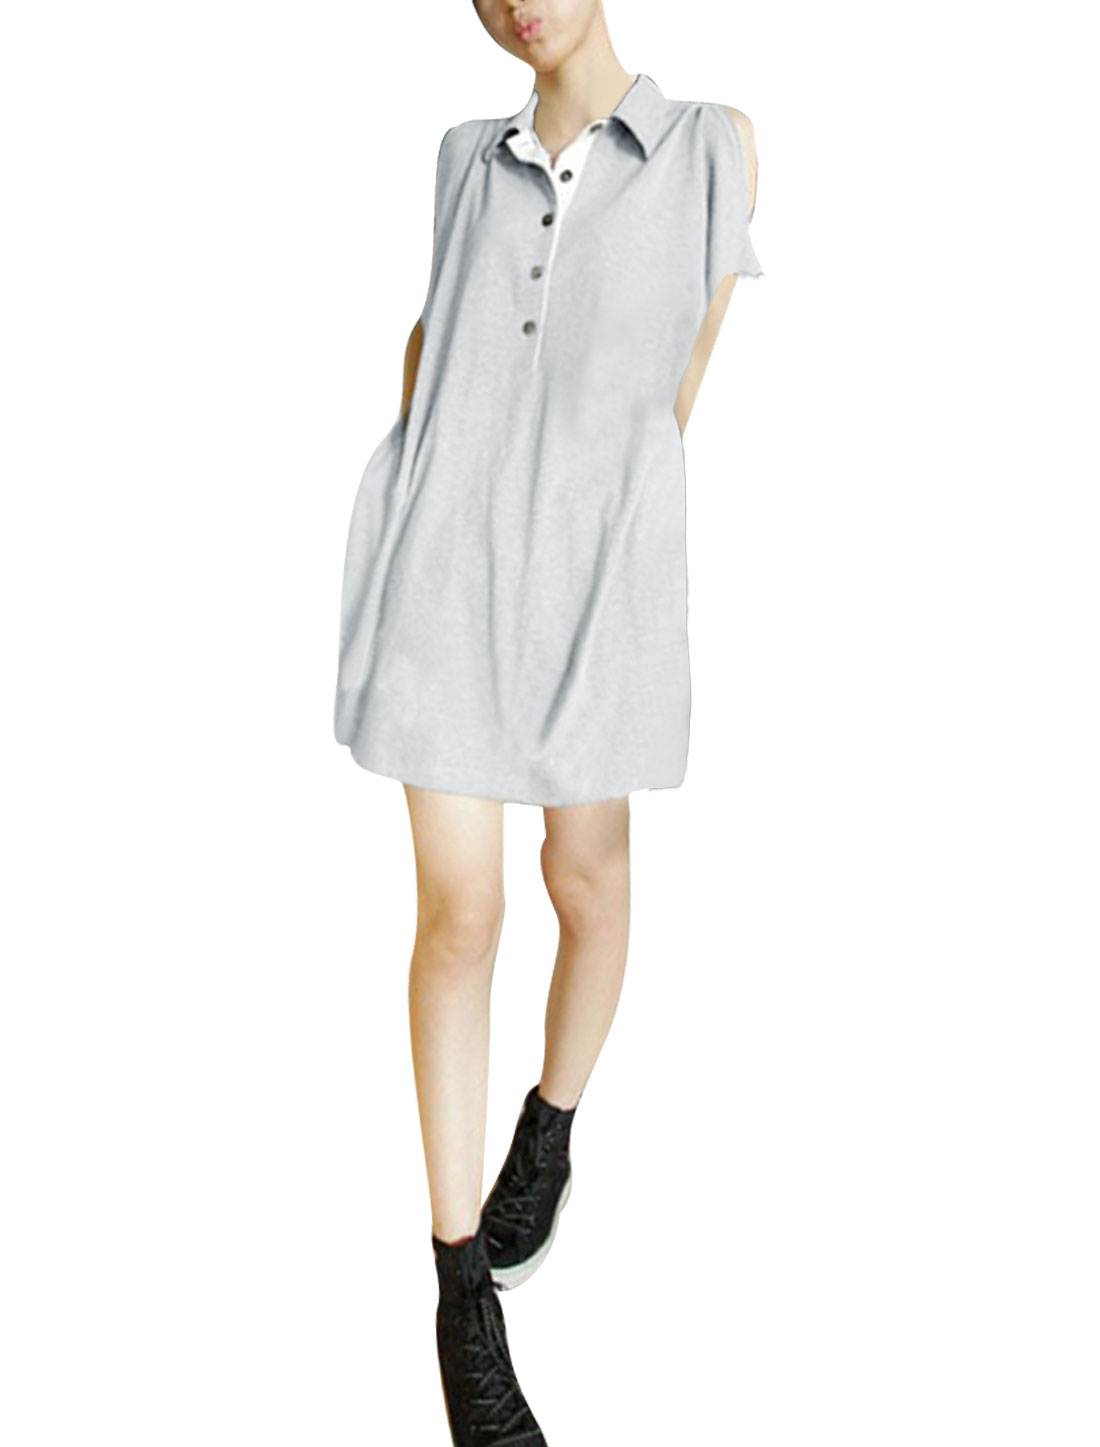 Women Batwing Sleeve Loose Point Collar Tunic Shirt Light Gray L